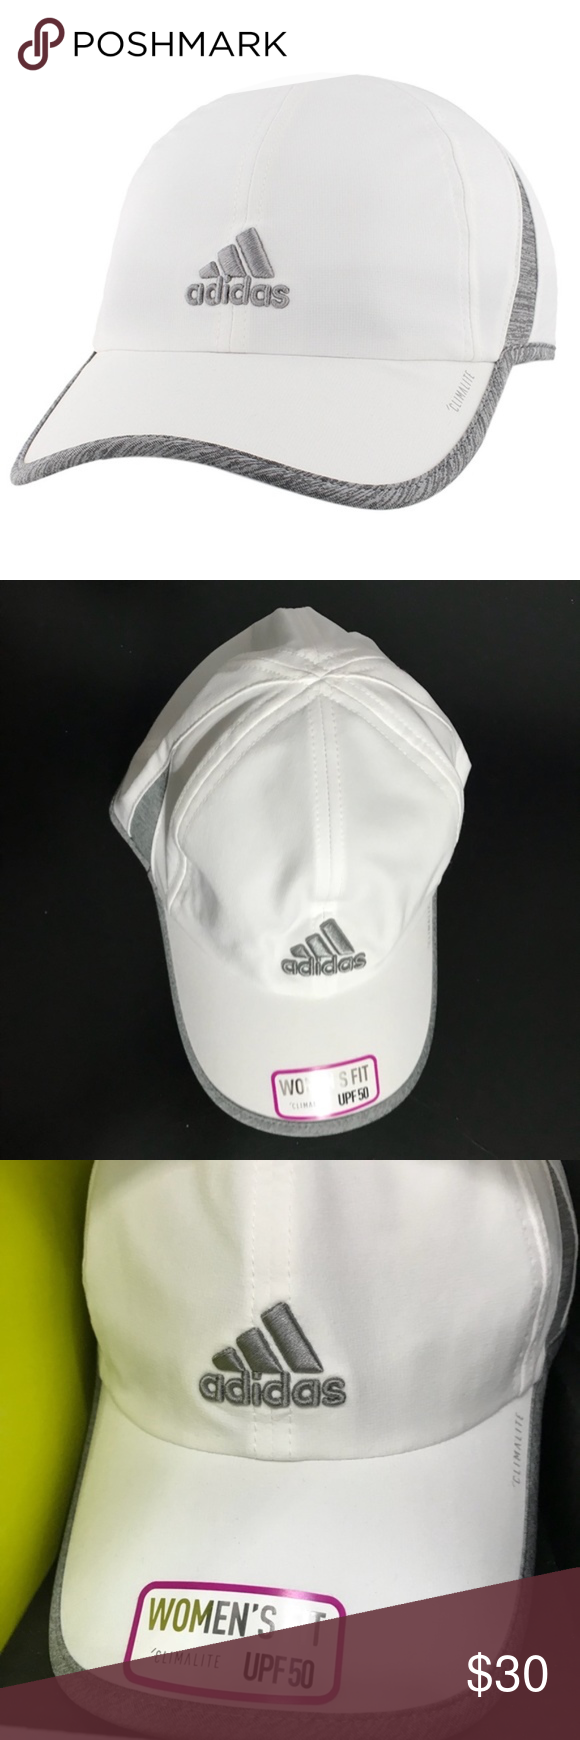 bb9a69af Adidas Women's Climalite SPF 50 hat! NWT! Brand-new white climate Adidas hat